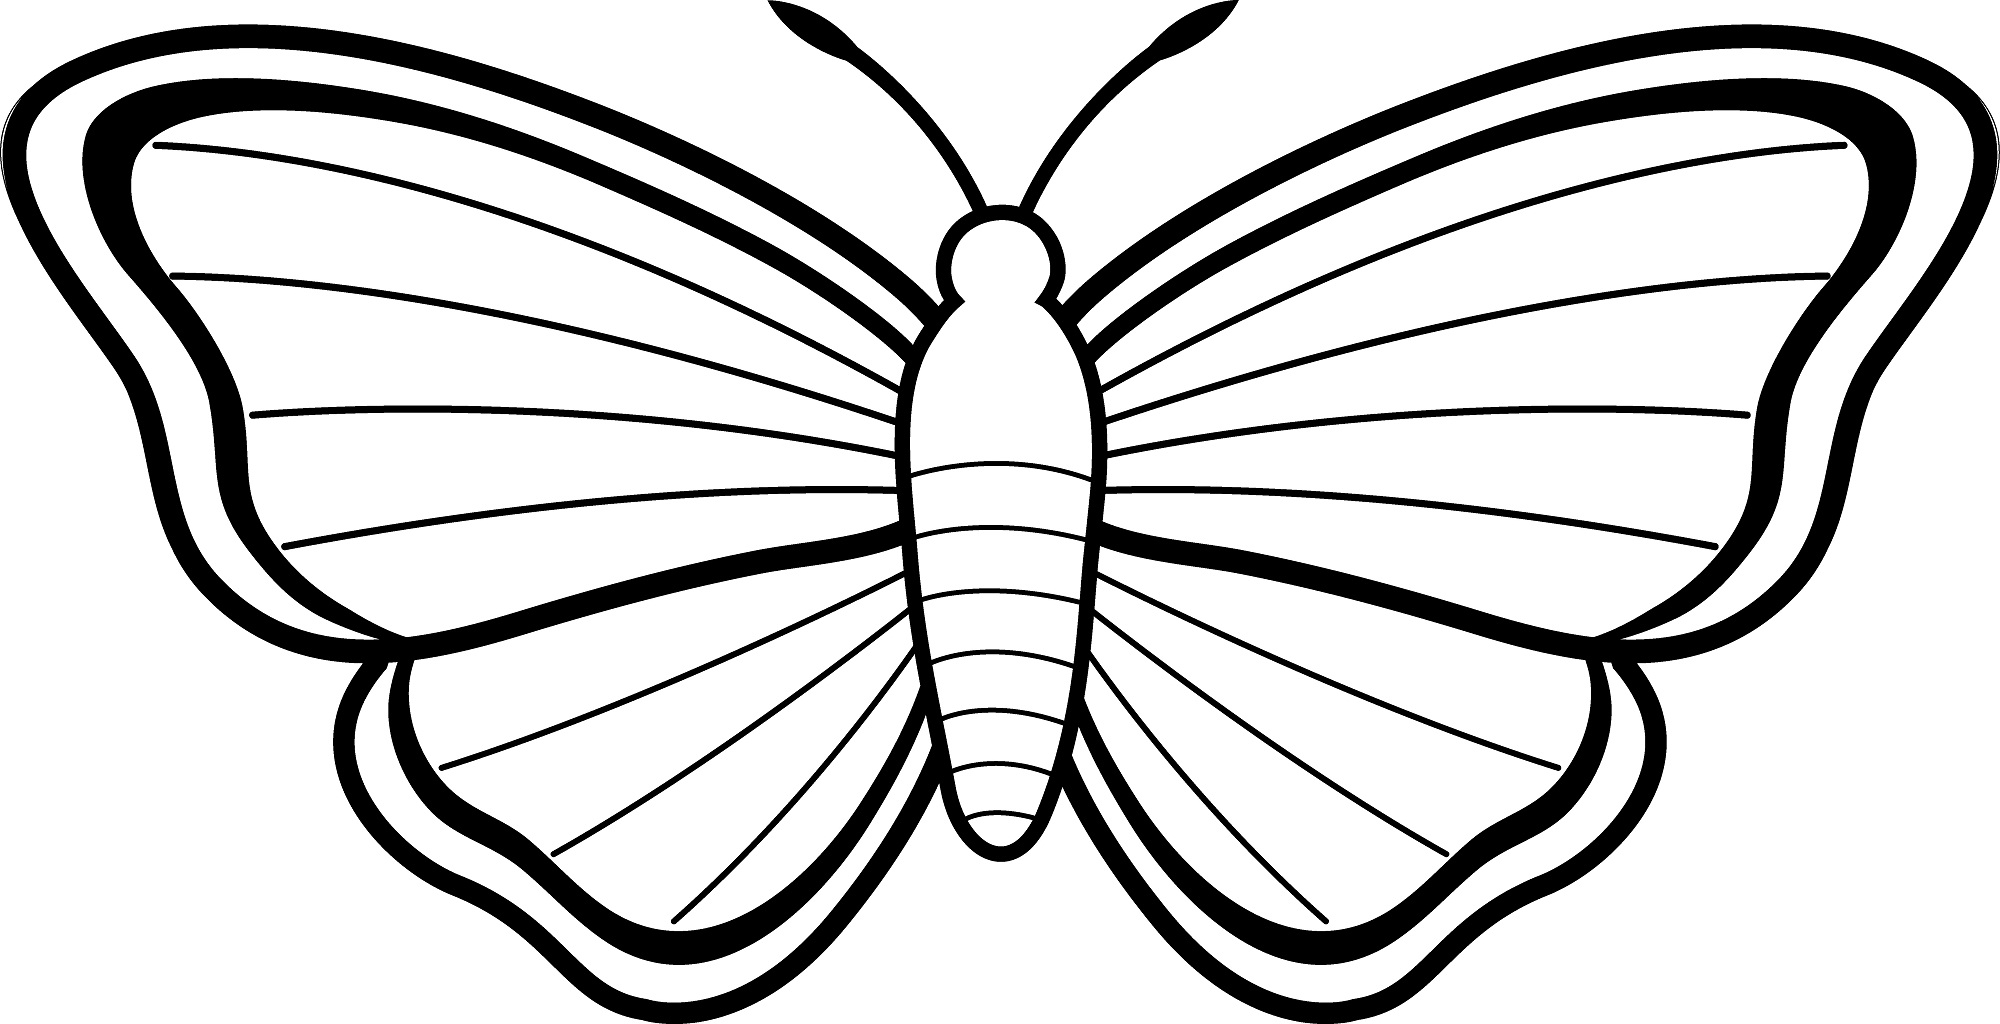 Butter clipart coloring Kids Printable Coloring Free Pages